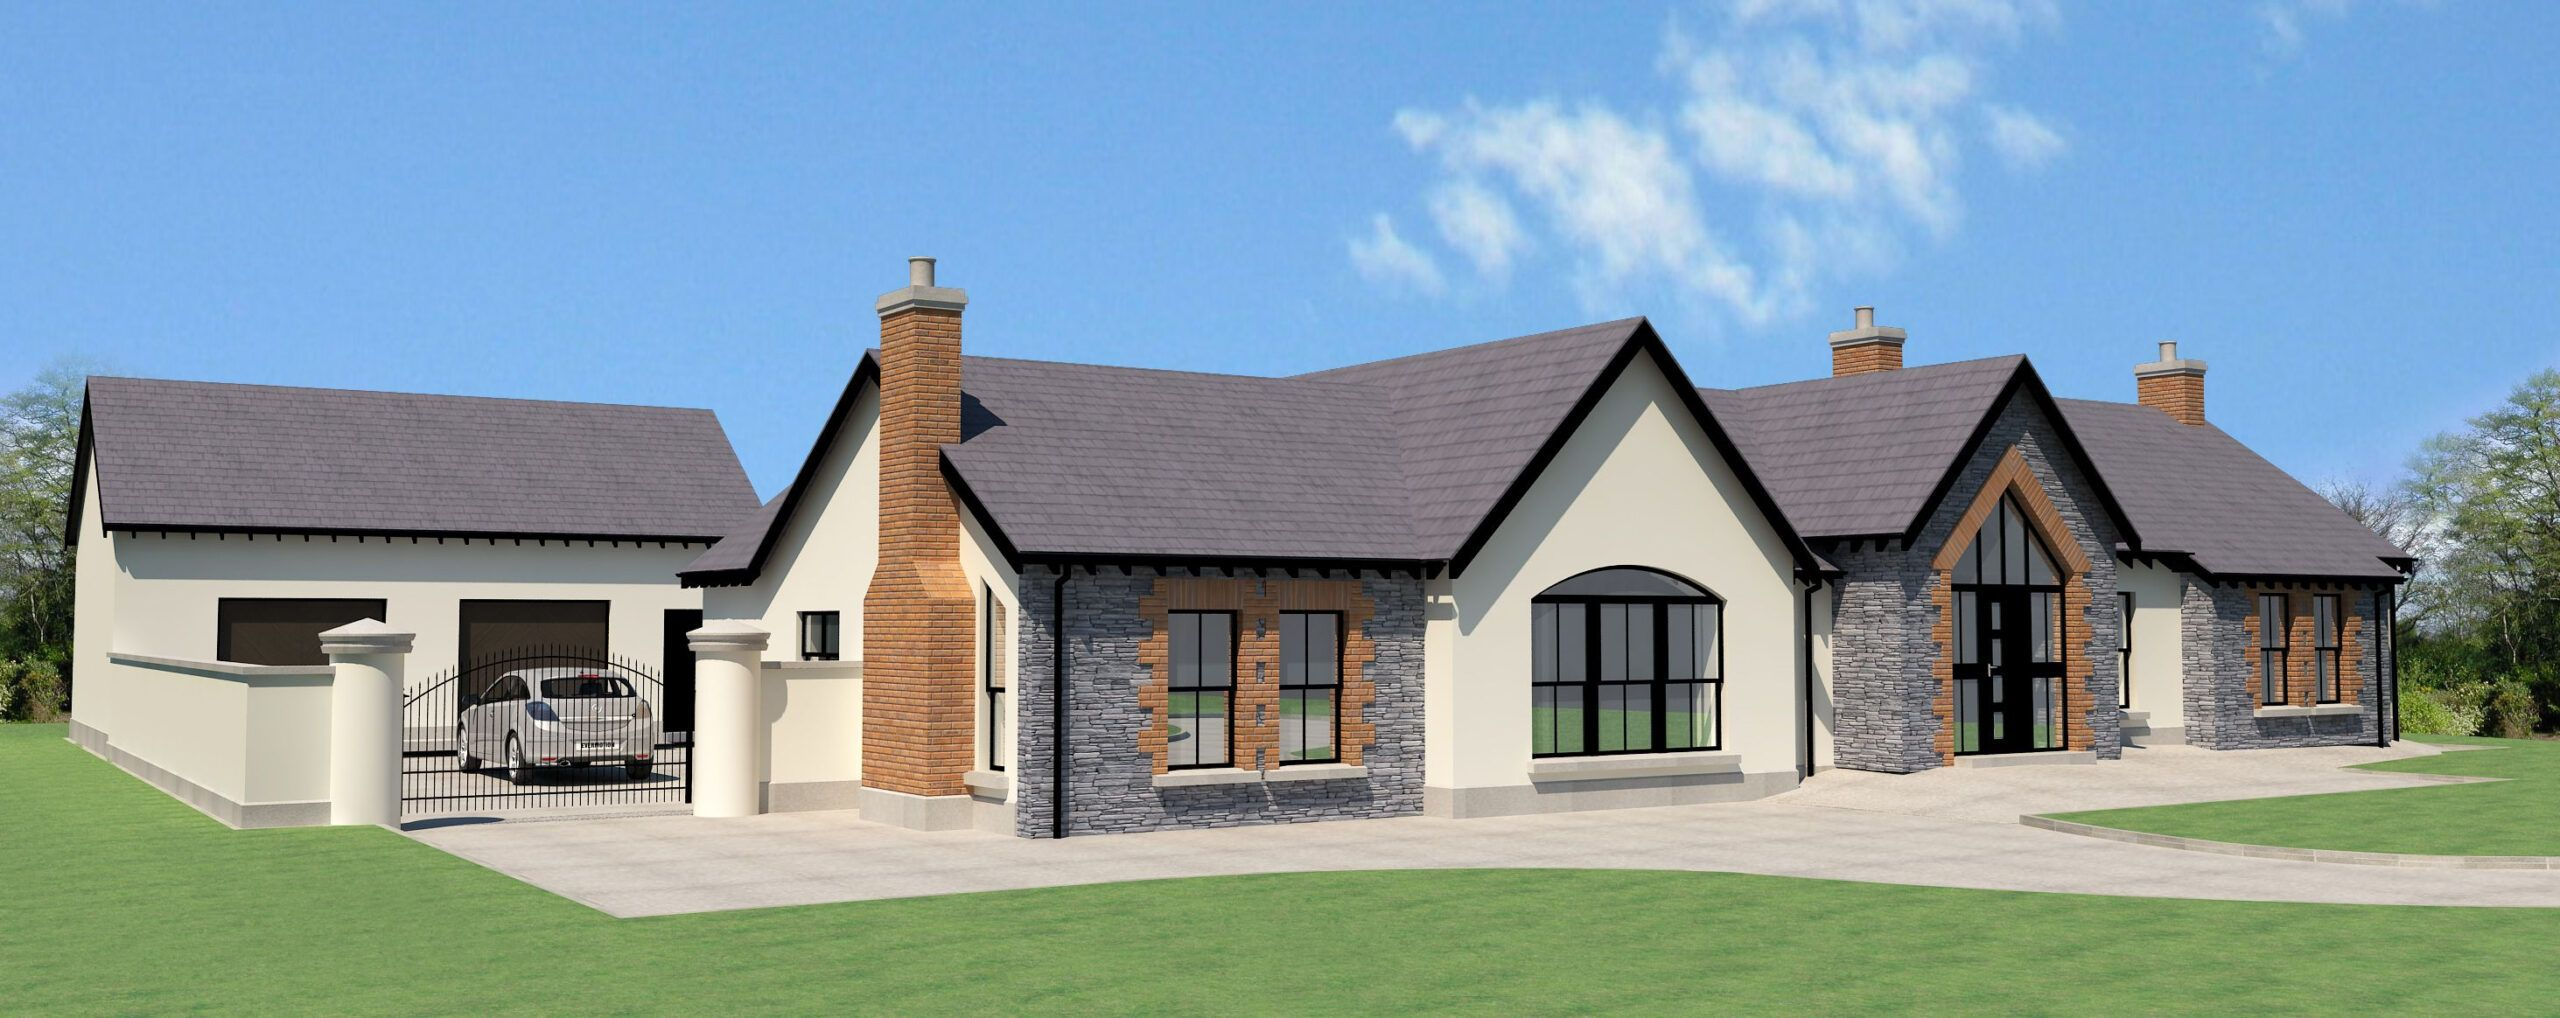 4 Bed Bungalow House Plans Ireland In 2020 House Designs Ireland Modern Bungalow House Irish House Plans